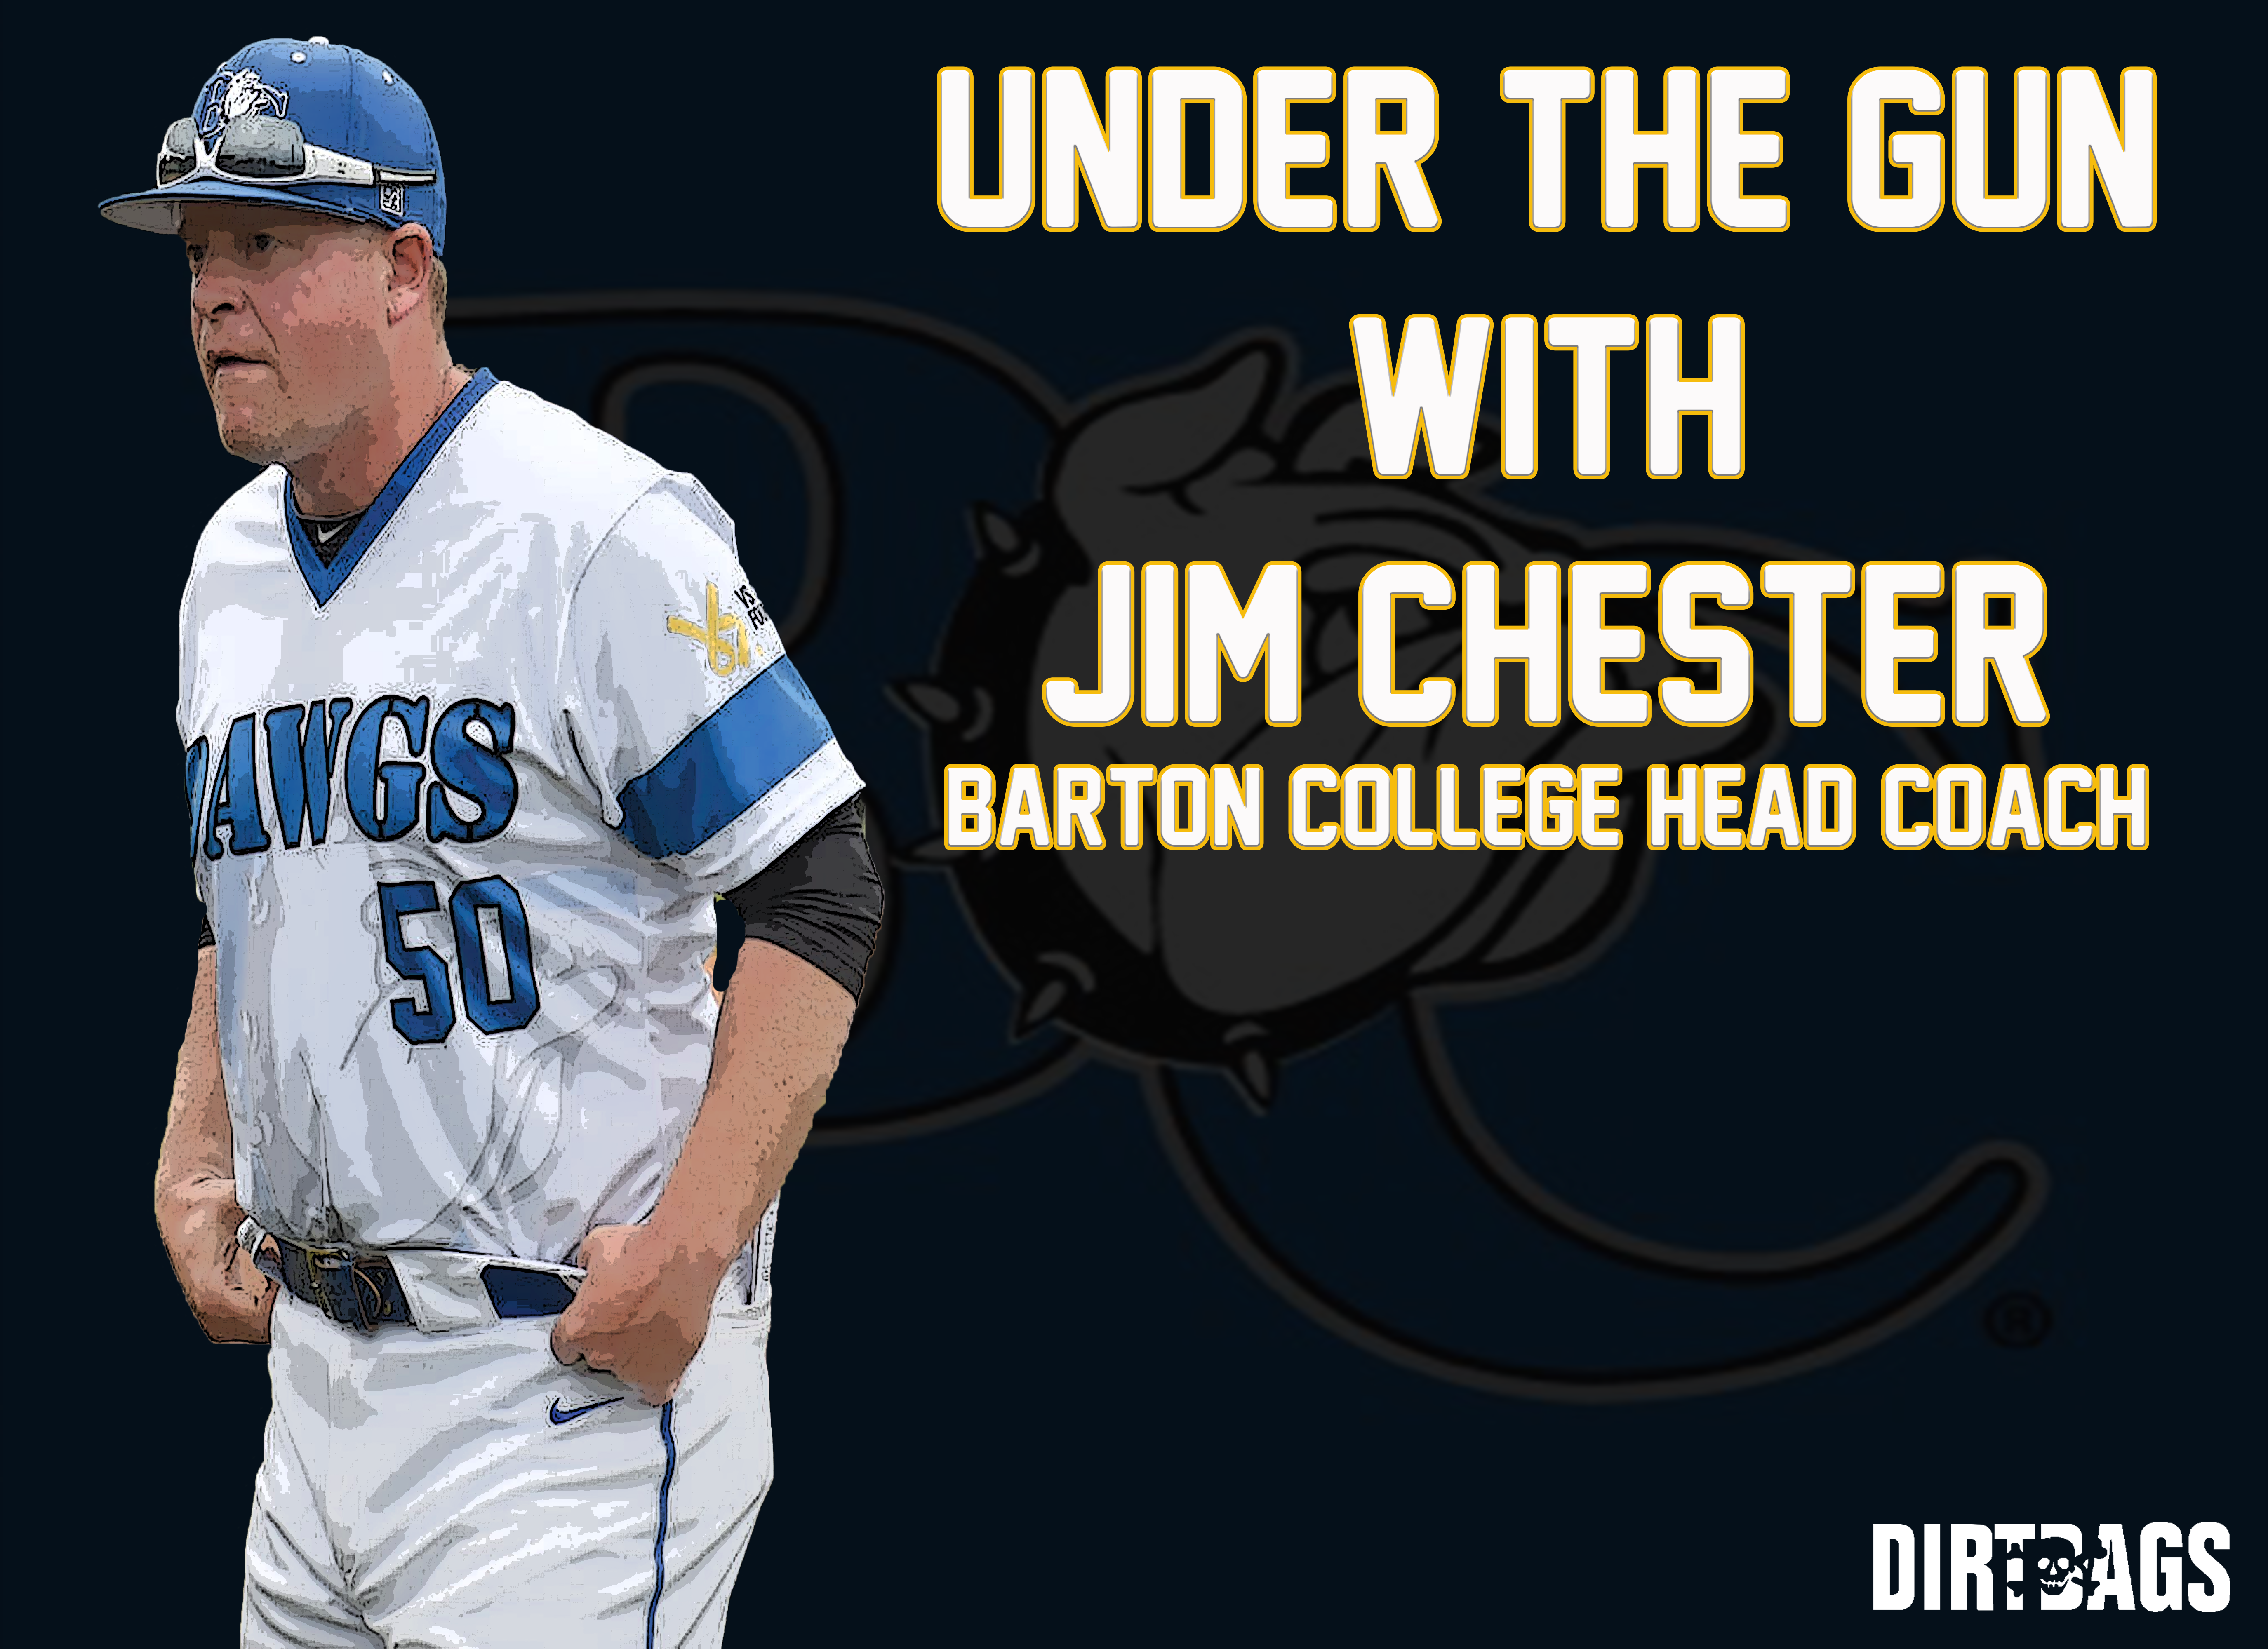 Under The Gun: Jim Chester